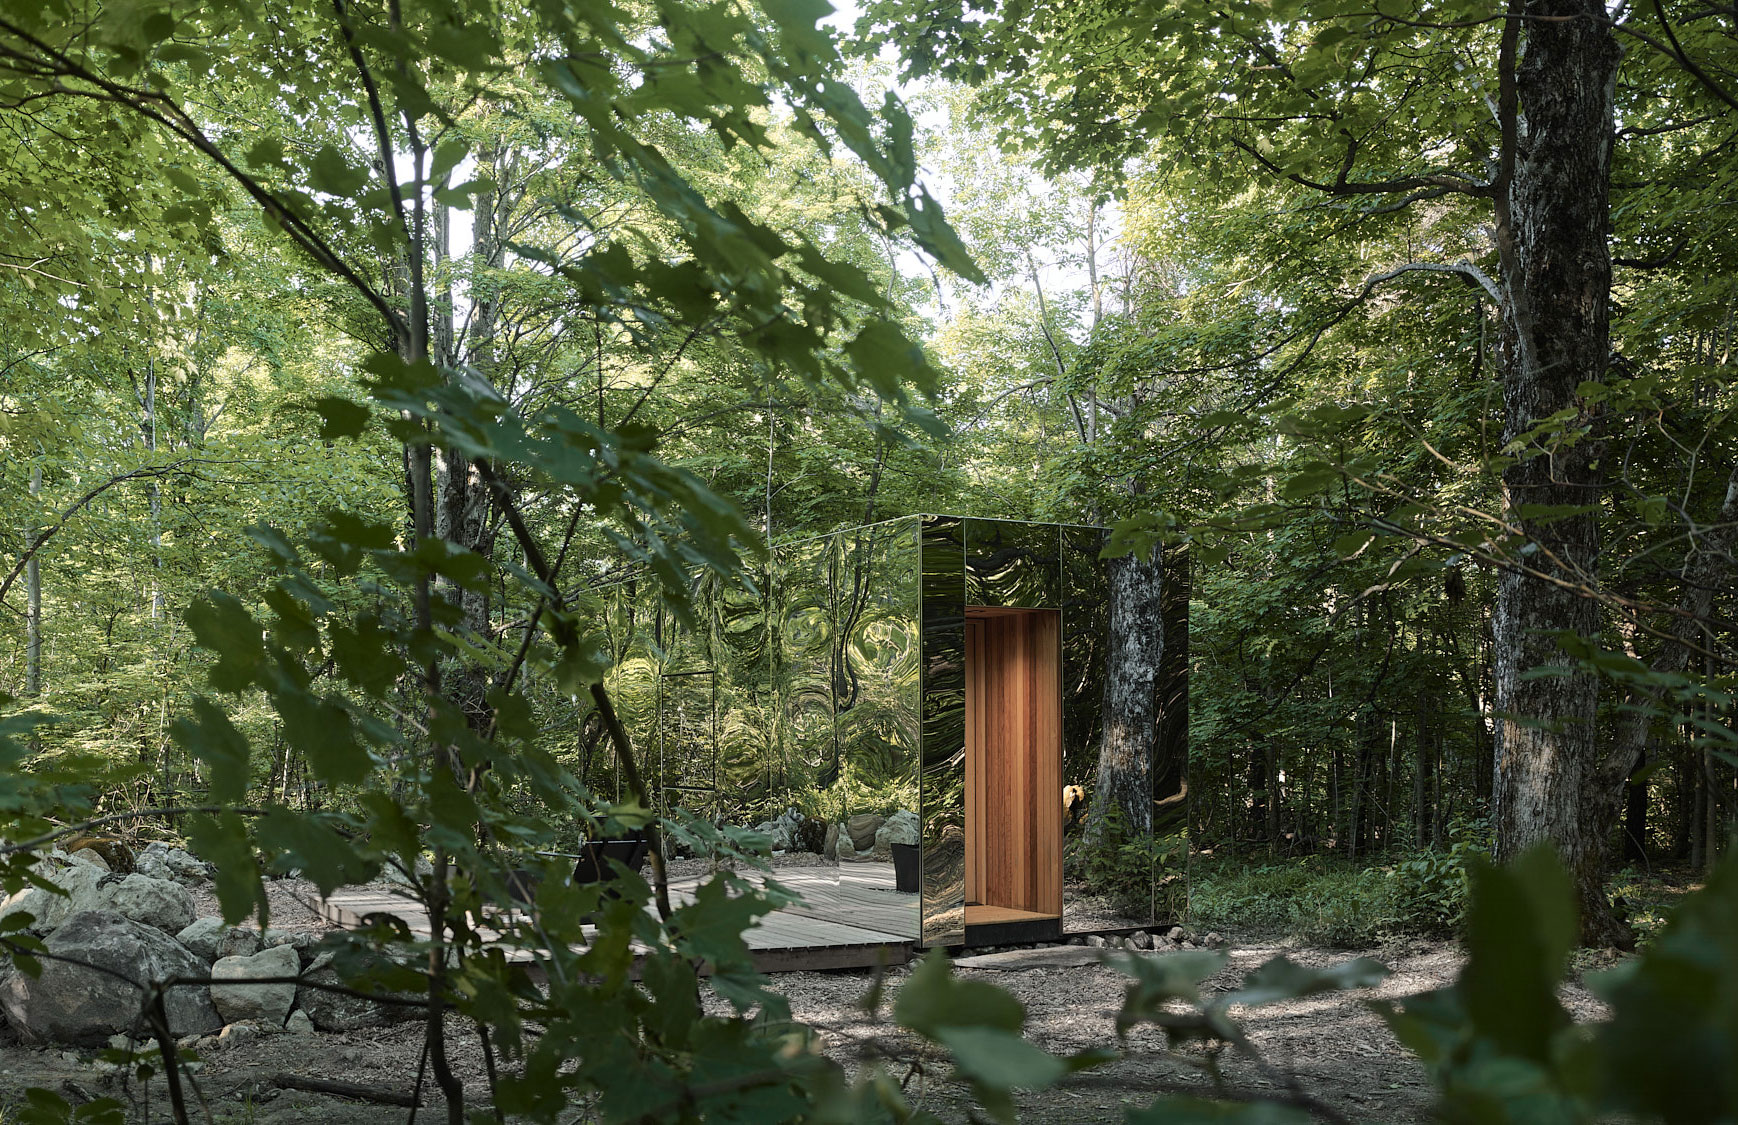 Arcana mirrored cabin hides in a forest an hour north of Toronto